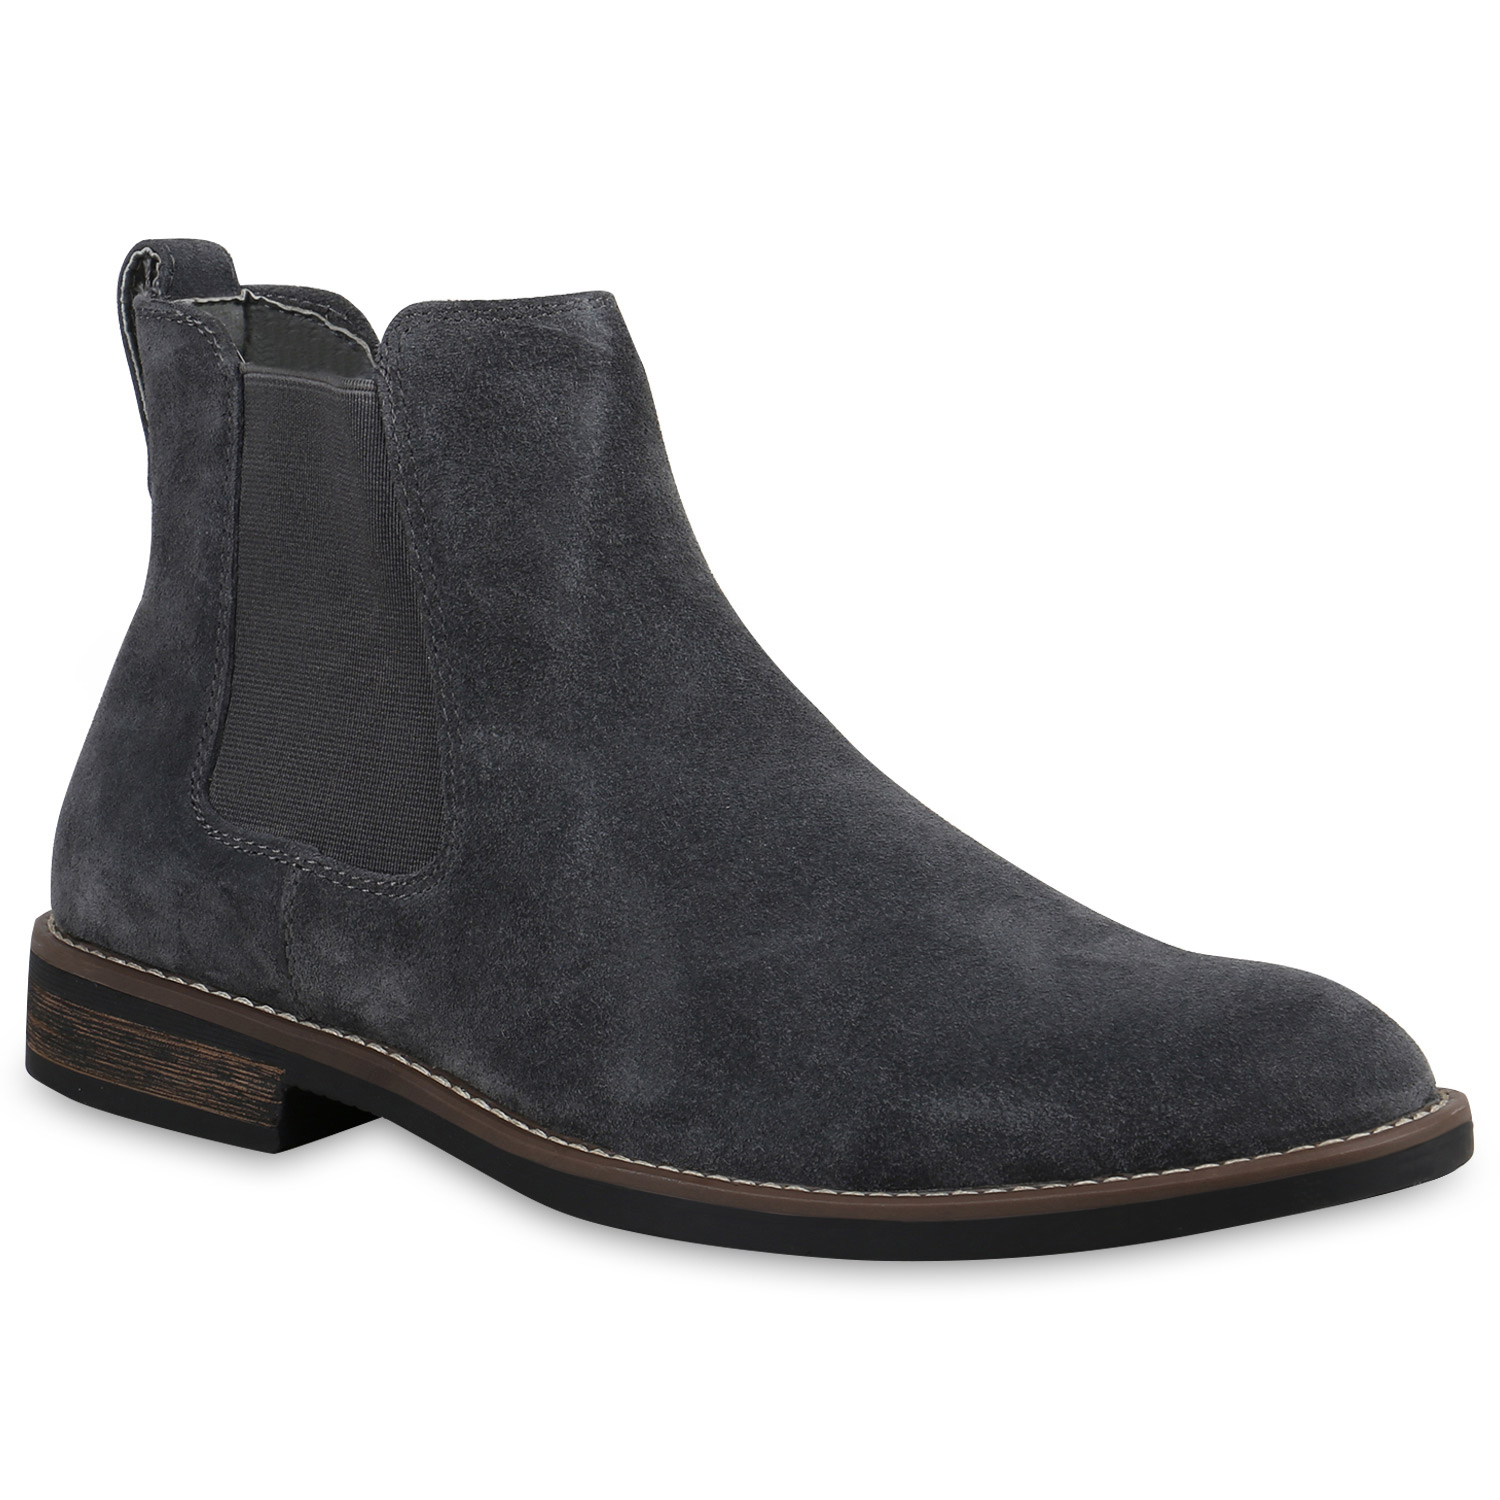 herren chelsea boots echtleder stiefeletten holzoptikabsatz 819954 schuhe ebay. Black Bedroom Furniture Sets. Home Design Ideas